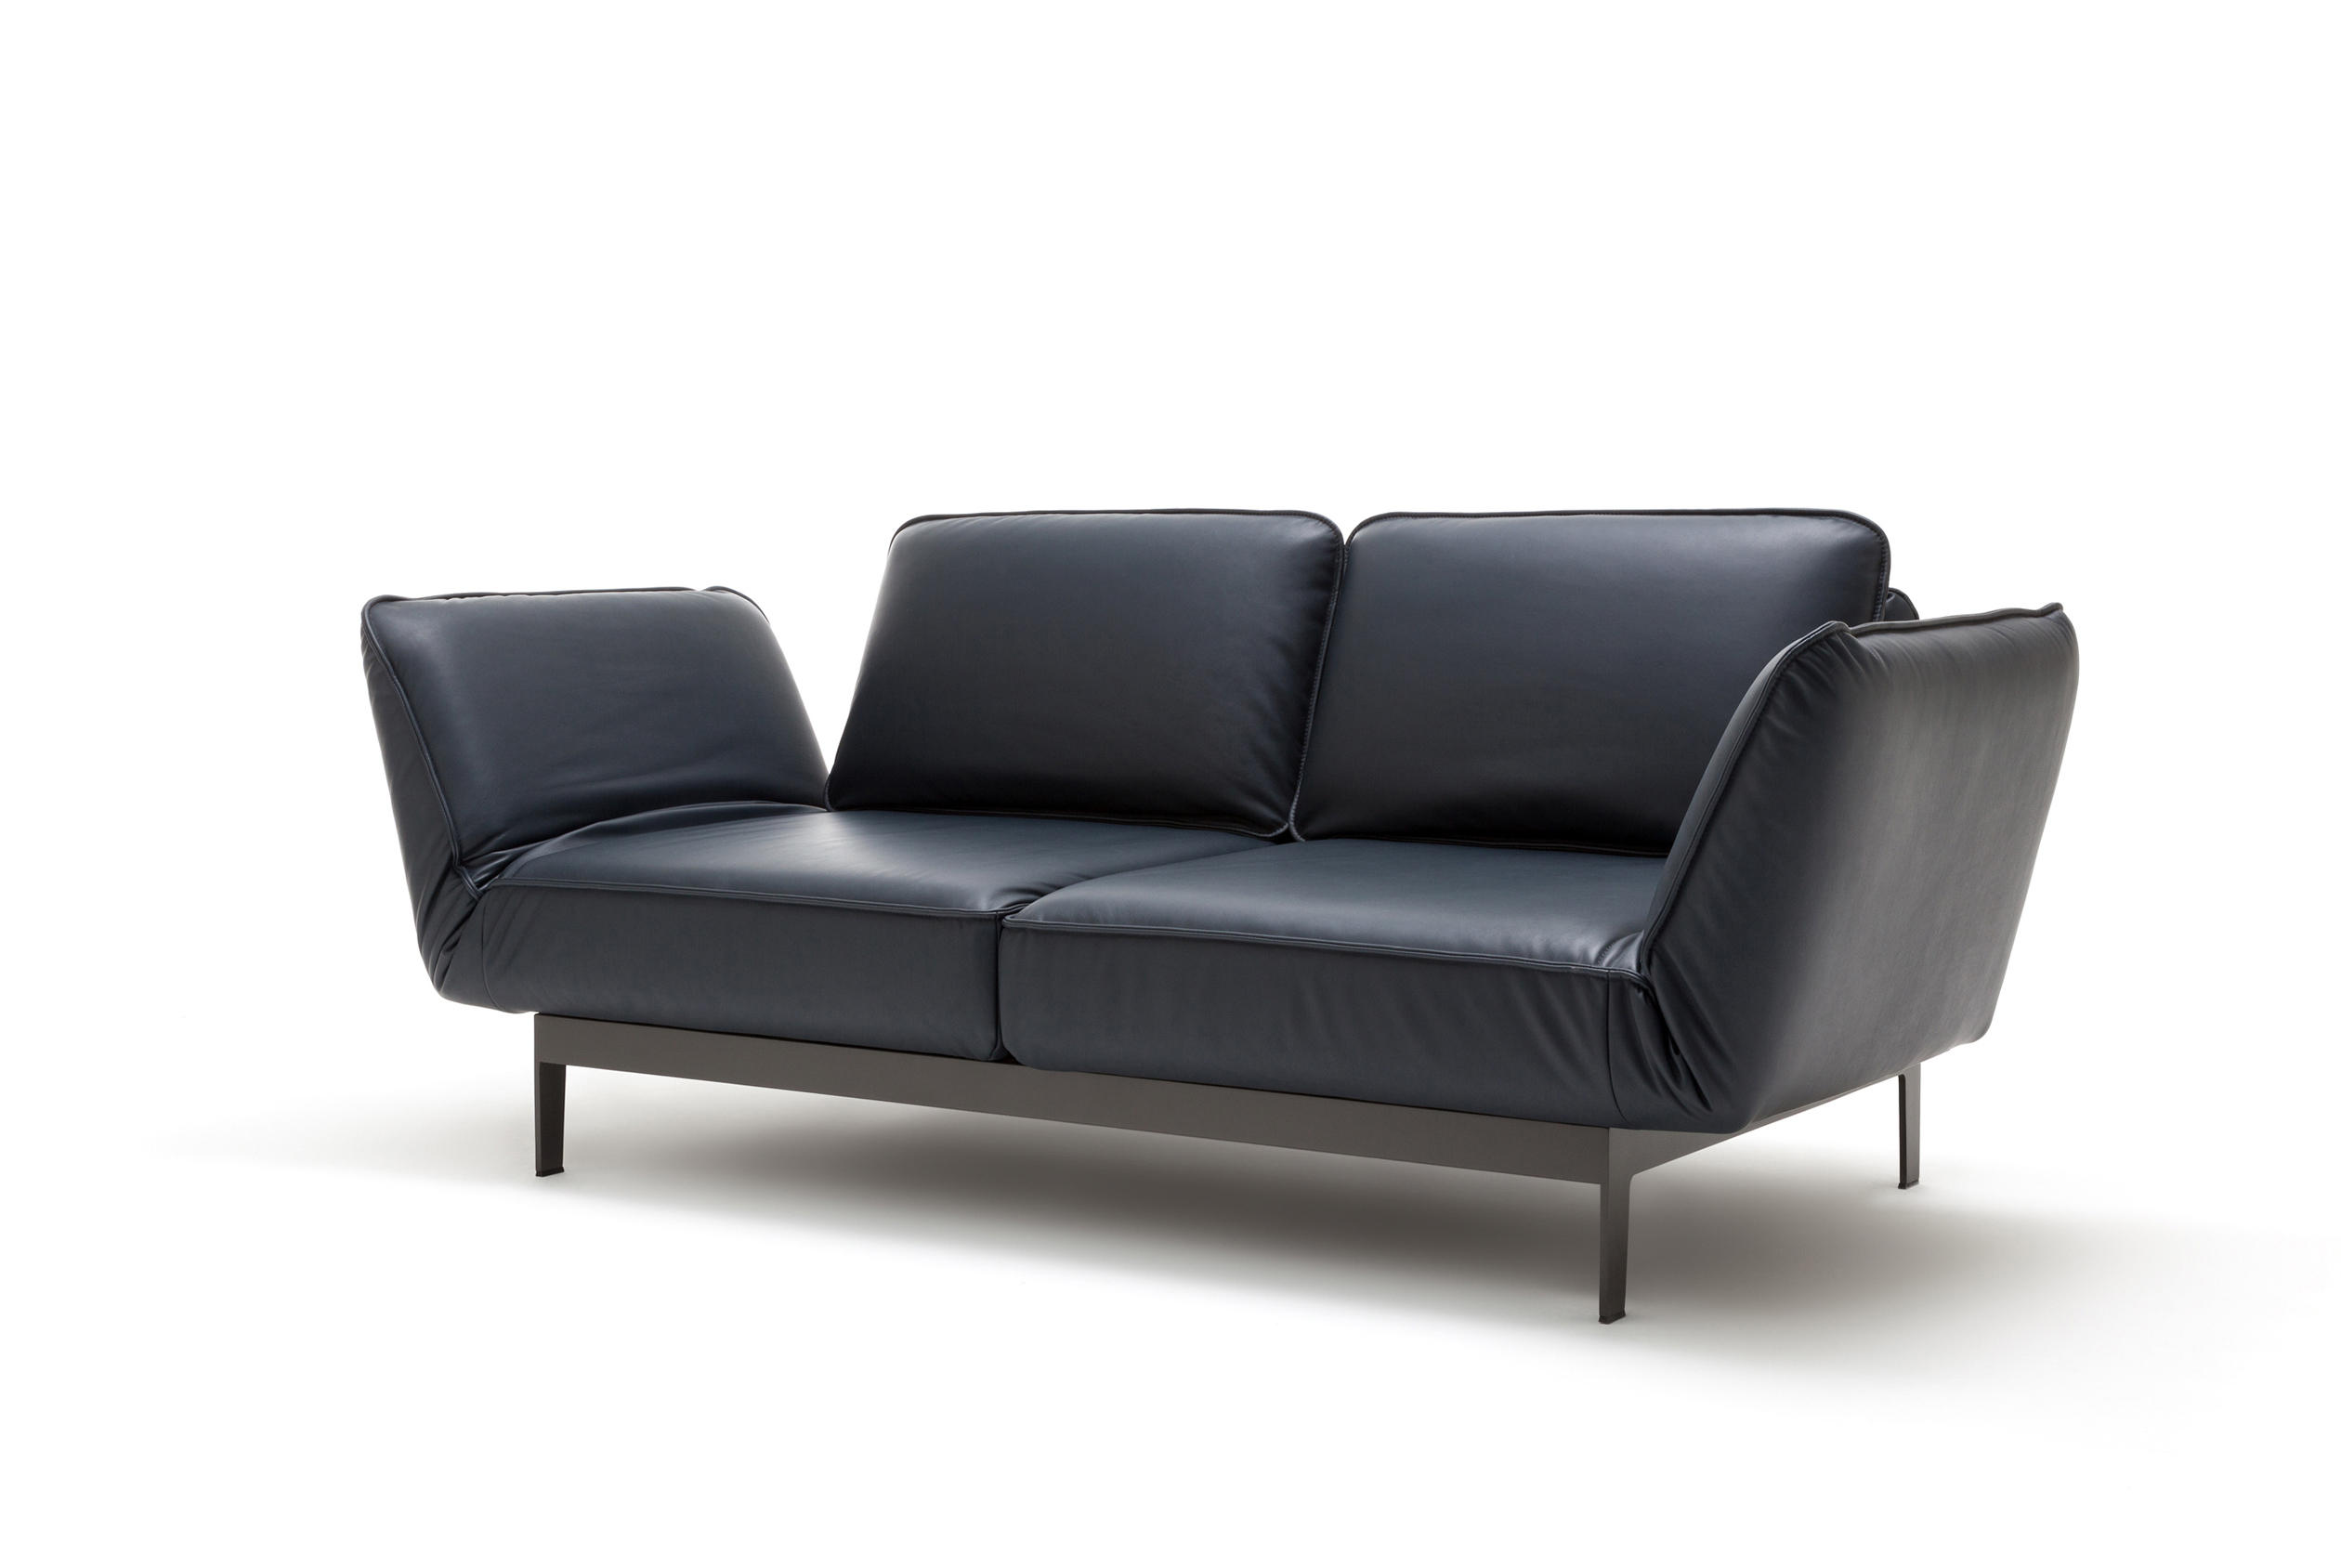 rolf benz 386 mera reclining sofas from rolf benz architonic. Black Bedroom Furniture Sets. Home Design Ideas